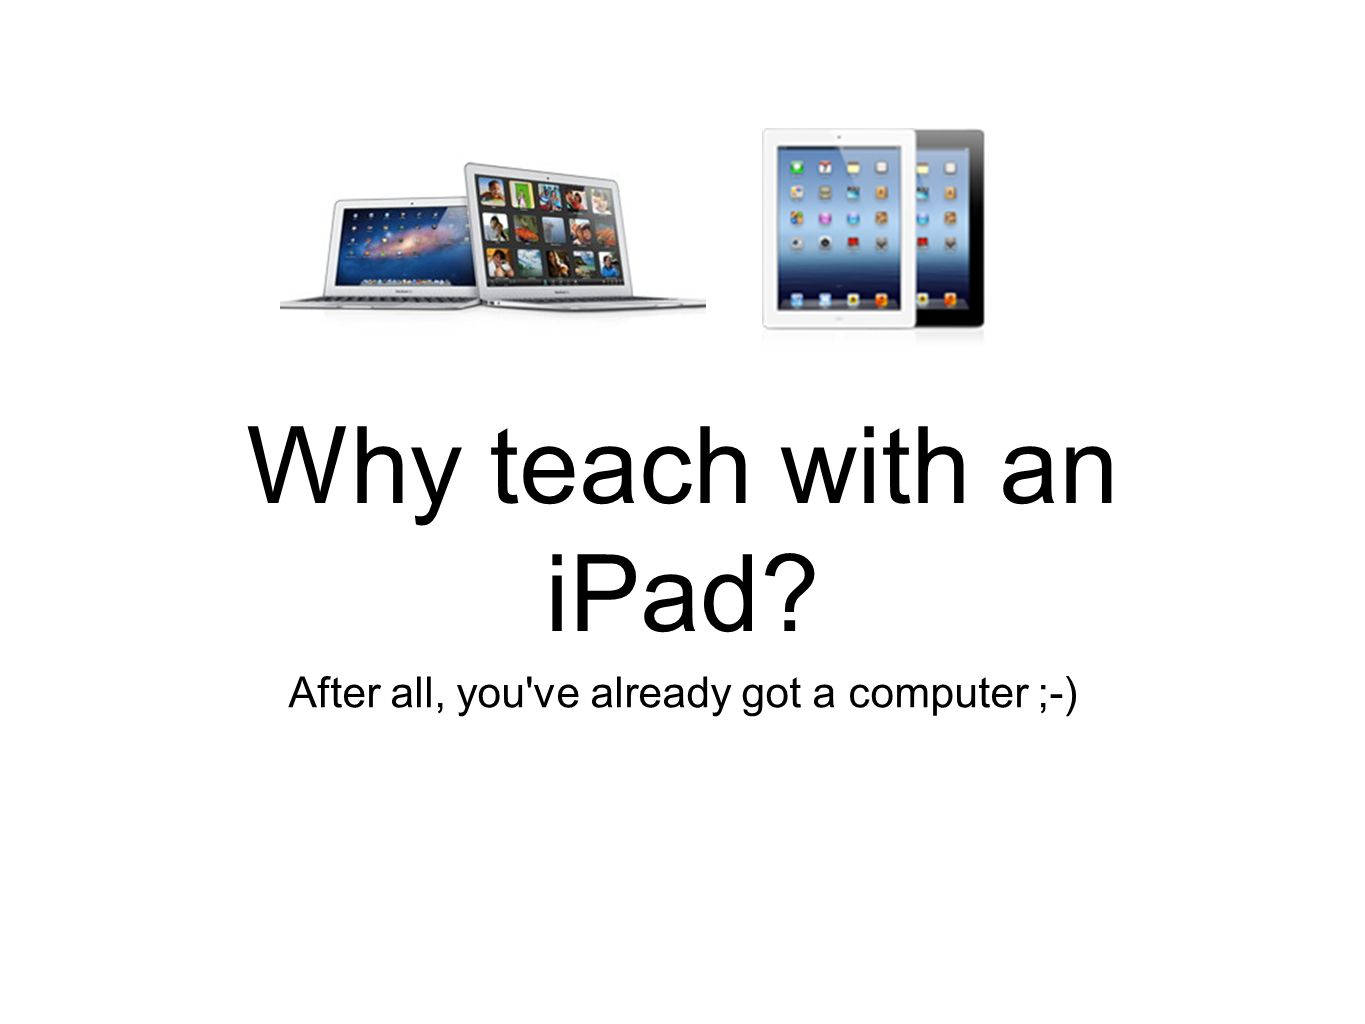 Why teach with an iPad After all, you ve already got a computer ;-)